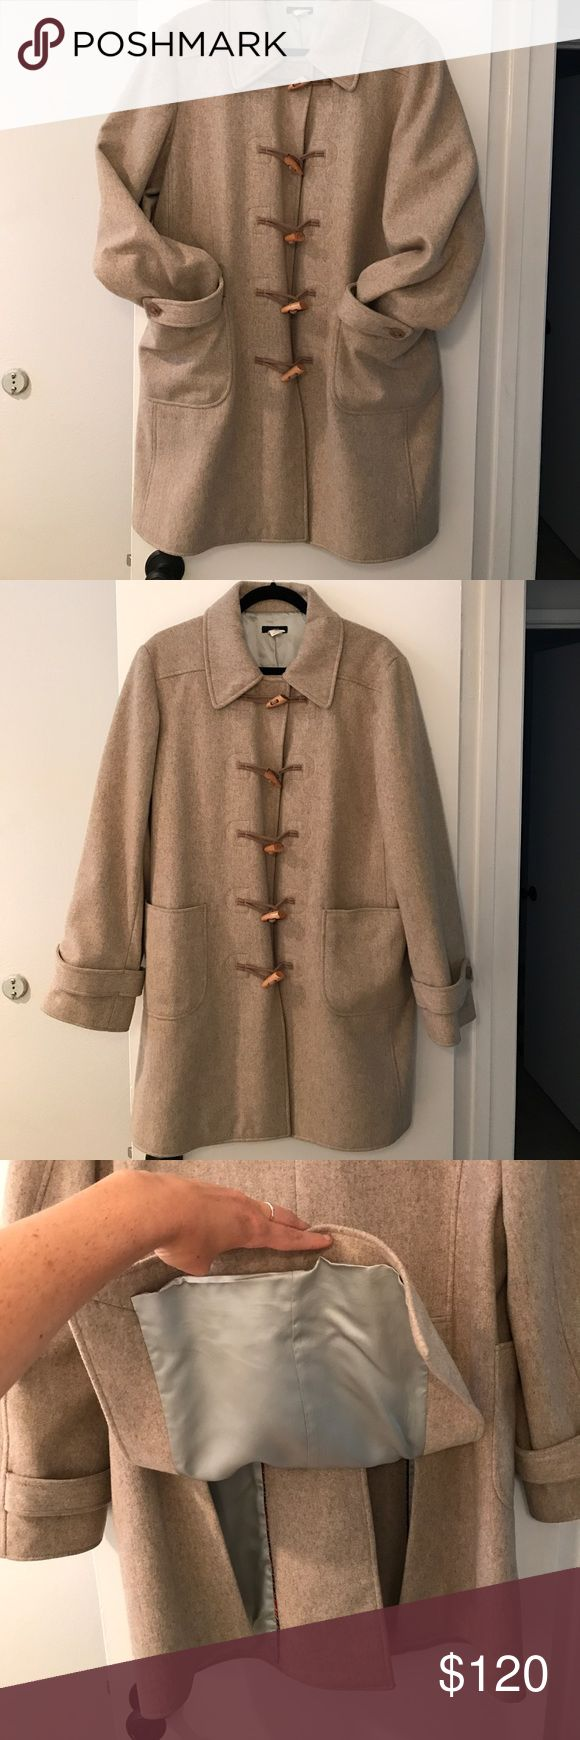 J Crew wool pea coat with toggle buttons Large Beautiful beige j crew pea coat just in time for fall! Wonderful toggle buttons, nice and warm!  Size L   Fits a little loose for a typically large coat J. Crew Jackets & Coats Pea Coats